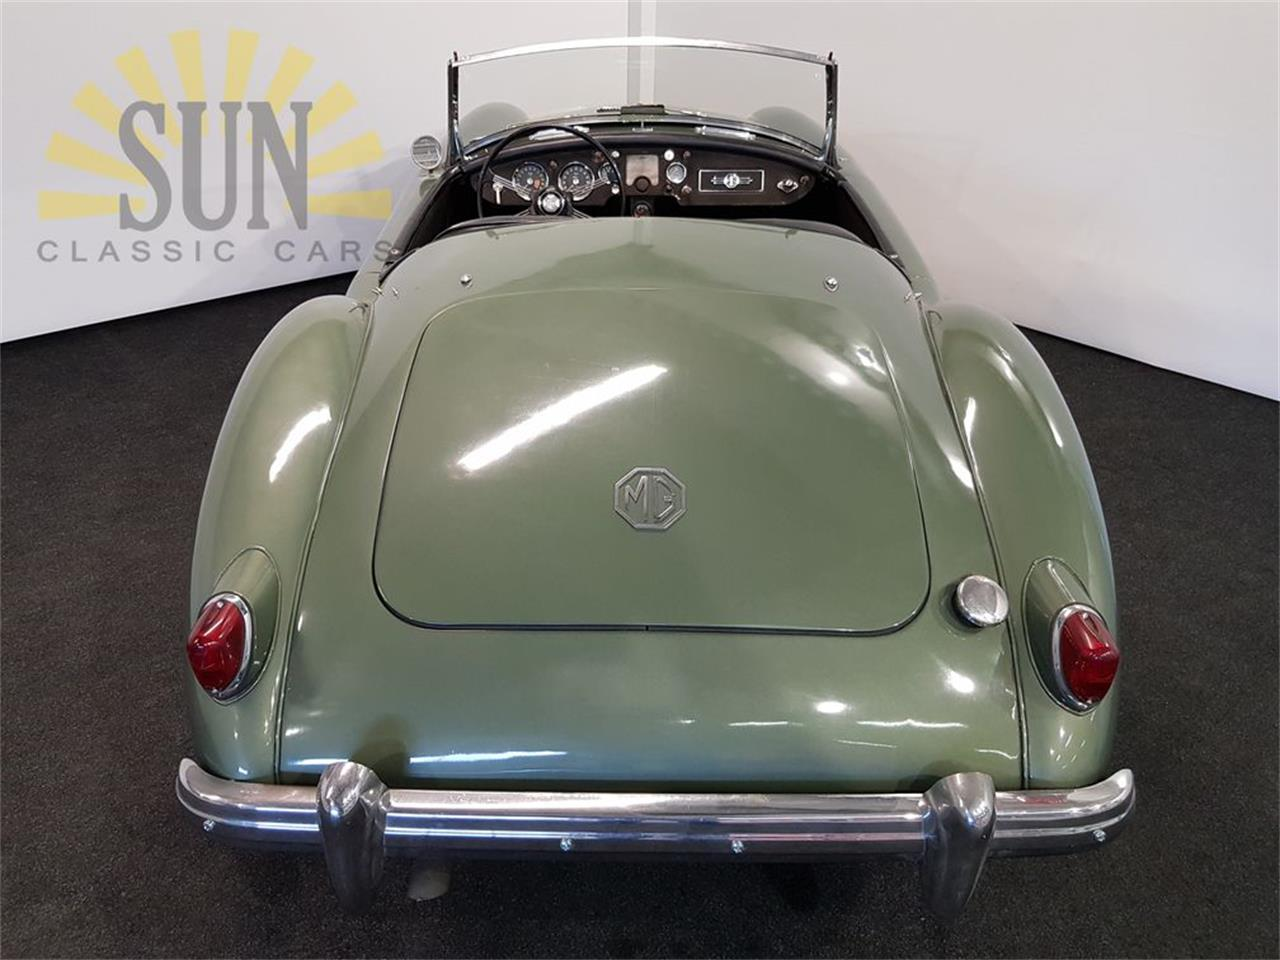 Large Picture of Classic 1959 MG MGA located in Waalwijk noord Brabant - $22,500.00 - PGT0